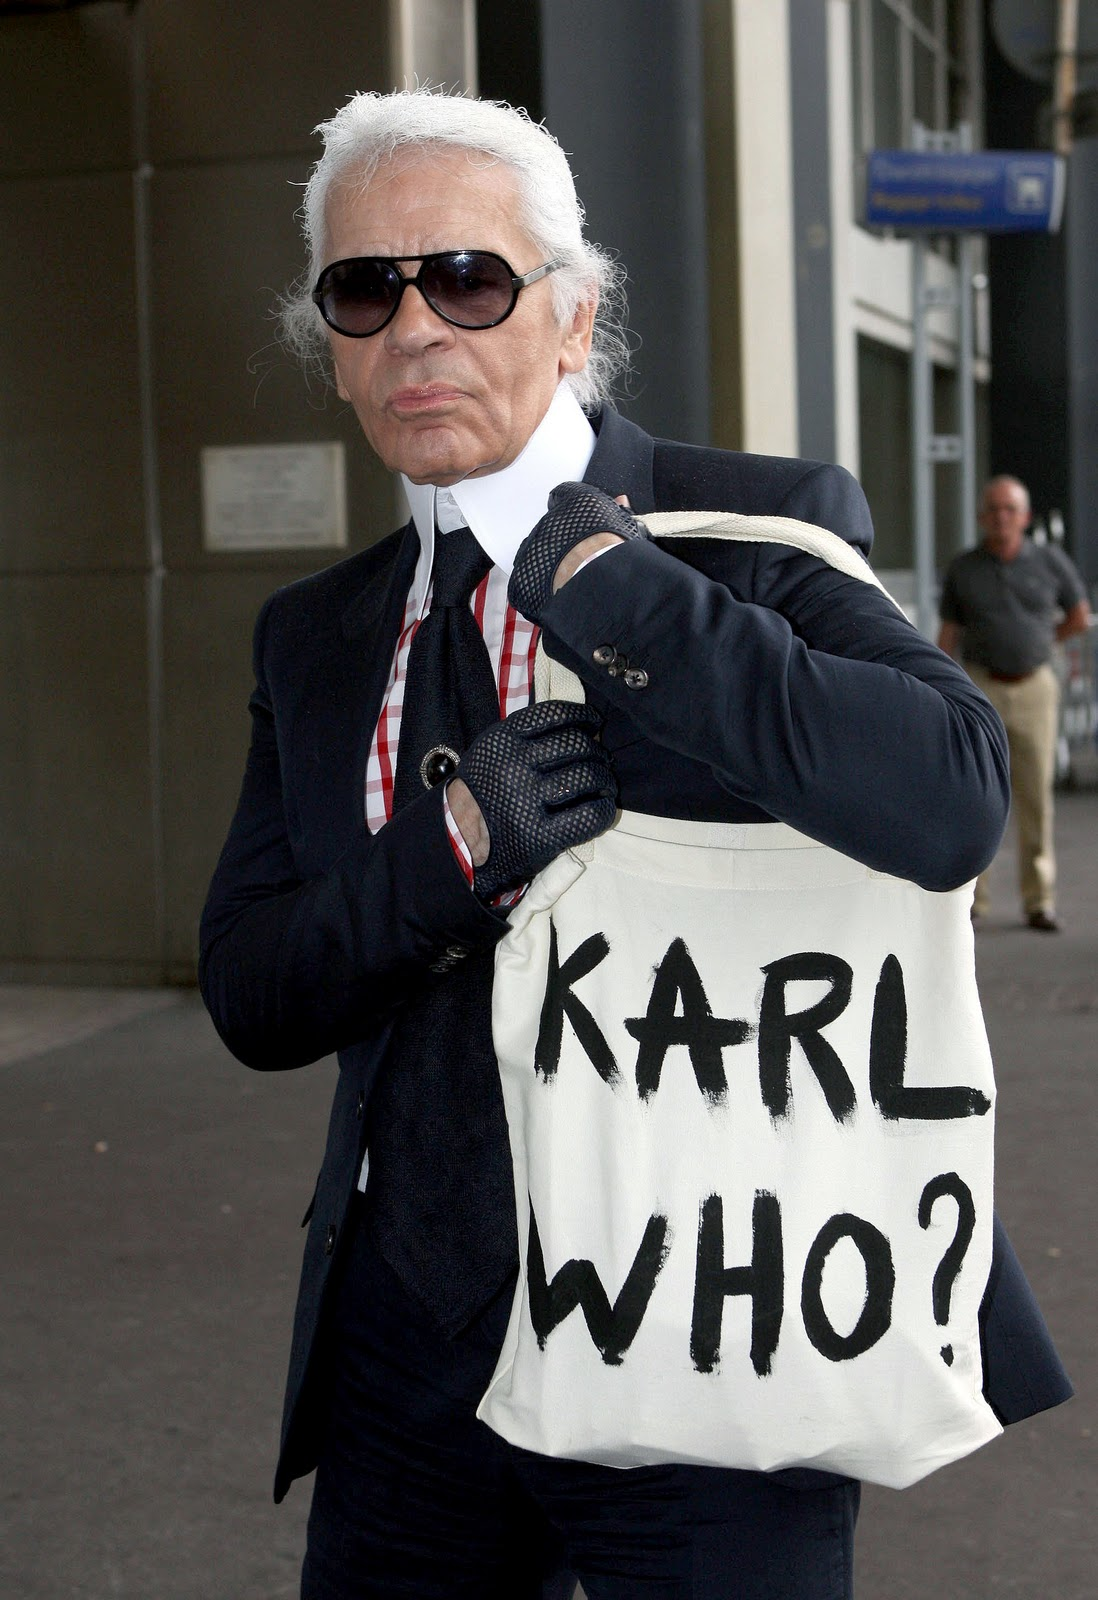 http://www.affashionate.com/wp-content/uploads/2012/10/karl-lagerfeld-1.jpg